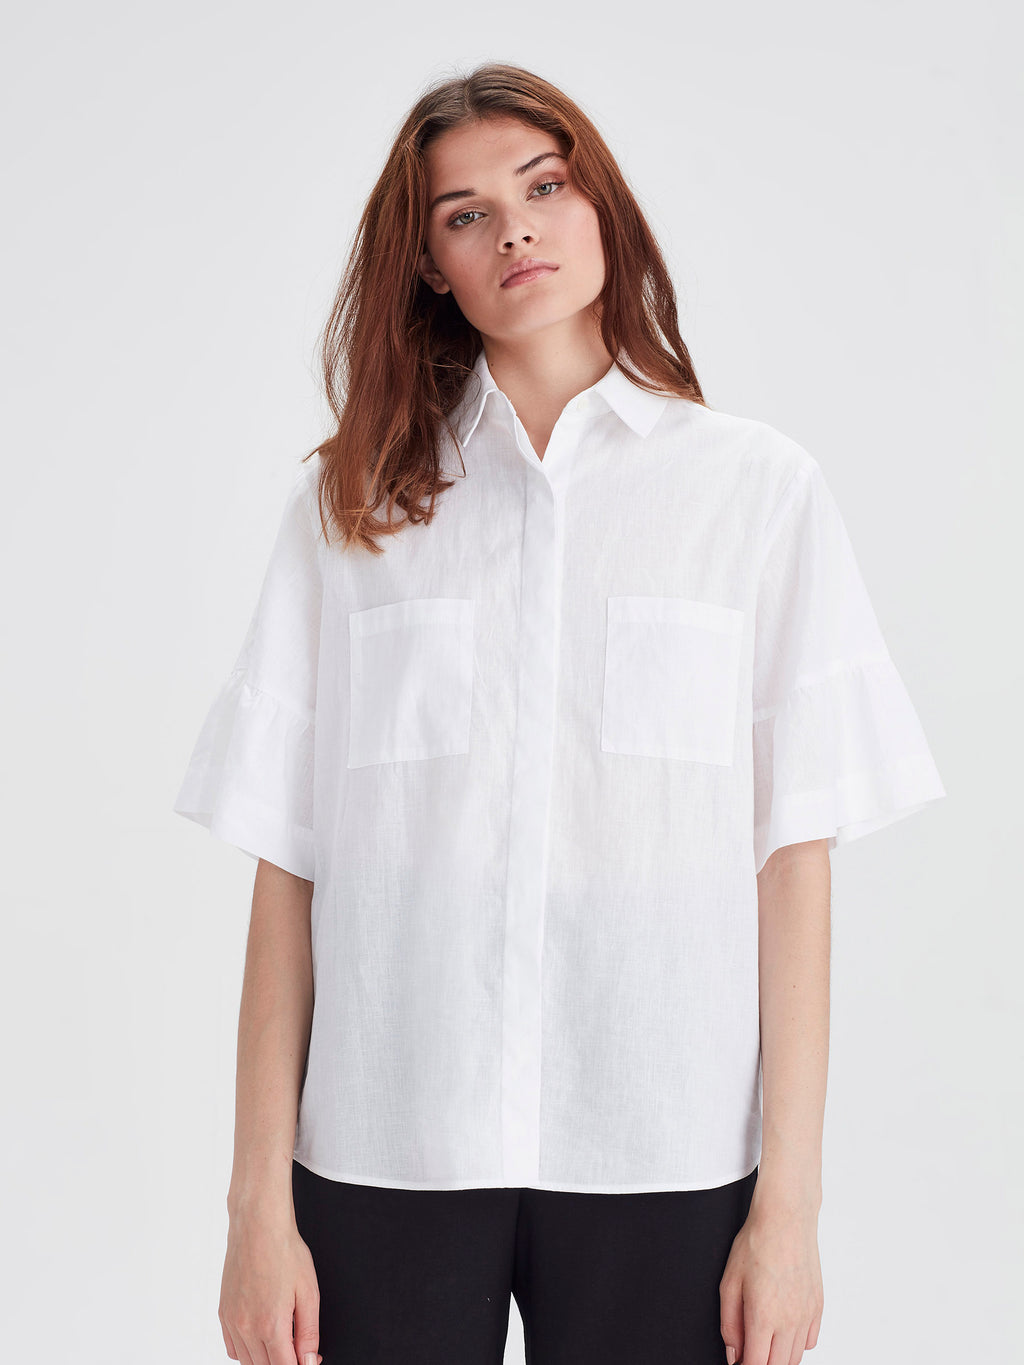 Elouise Blouse (Soft Linen Cotton) White